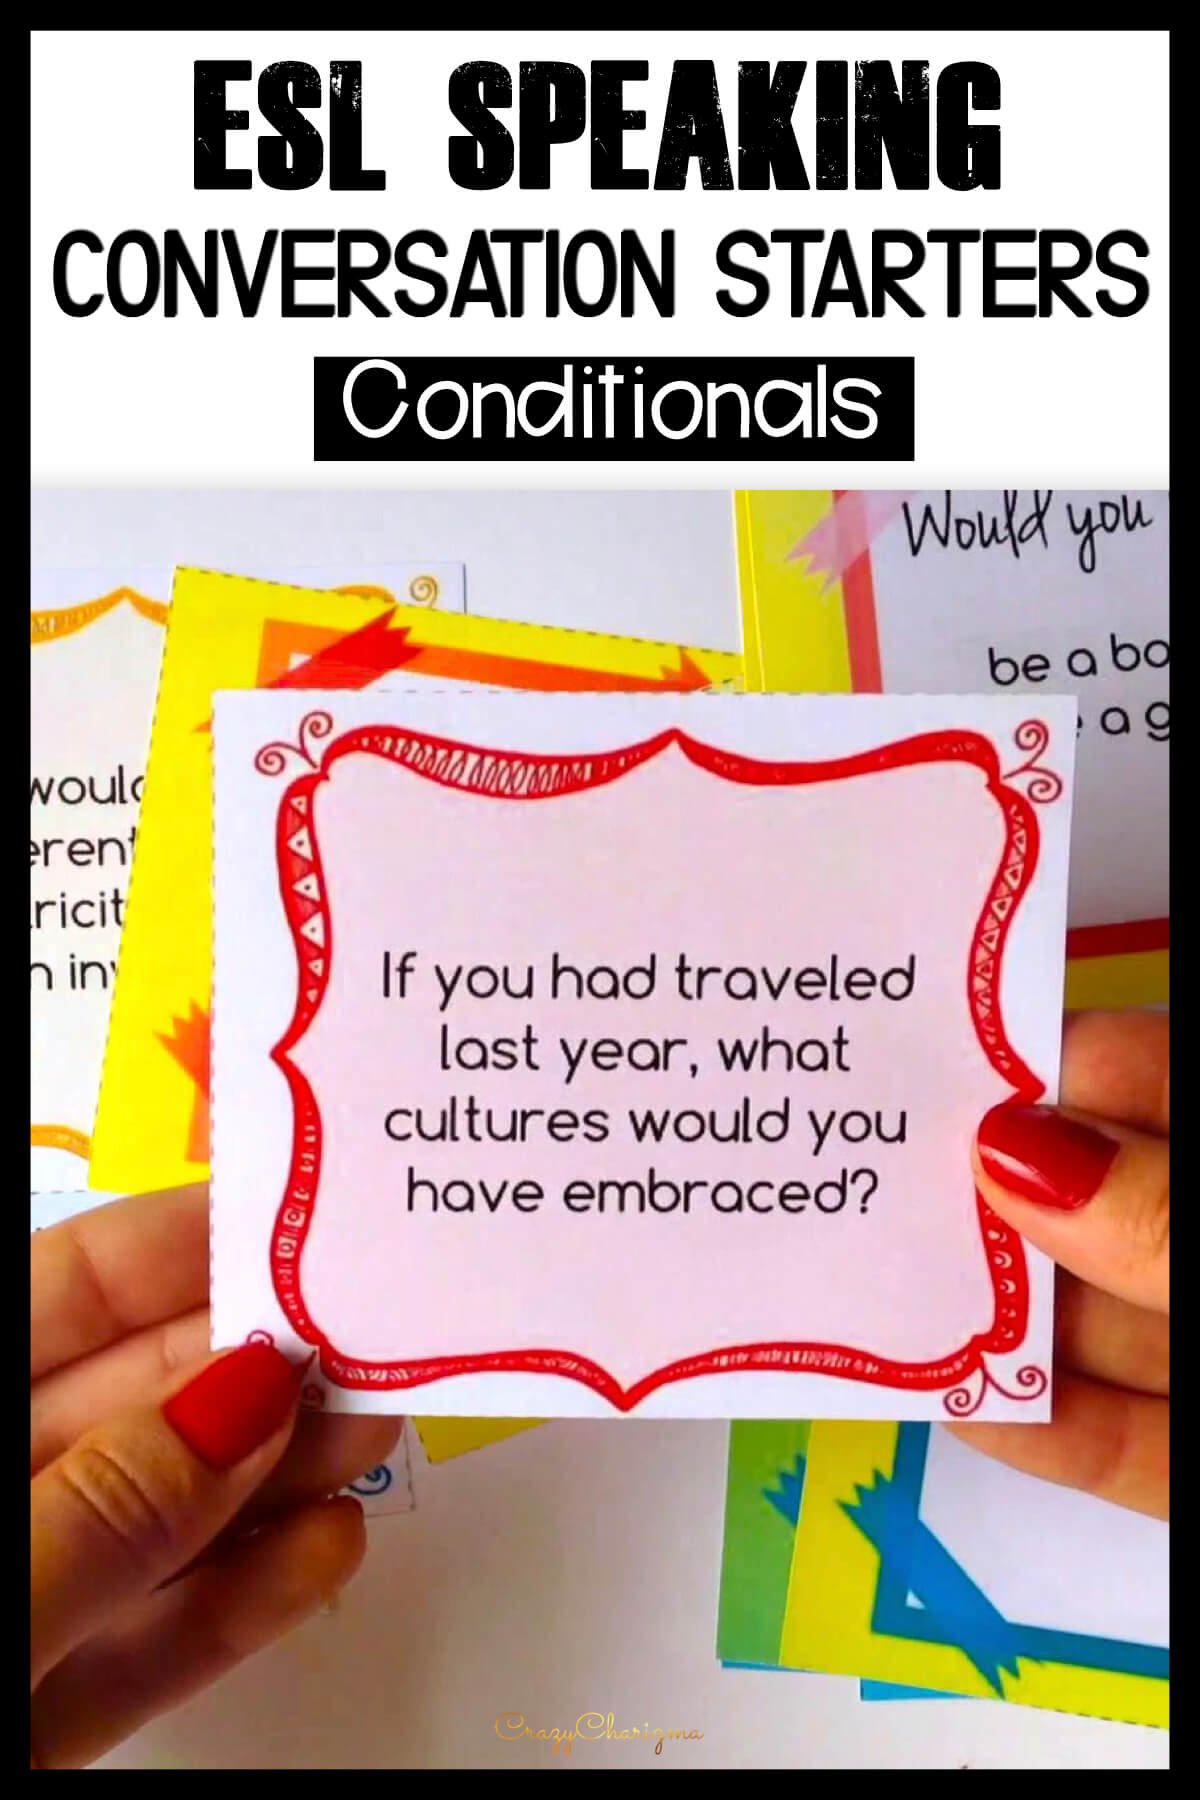 It's always hard to get ESL students to speak. Help them lose the fear of speaking and build conversational confidence in a fun way! Use these Conditionals questions. Practice both speaking and grammar!